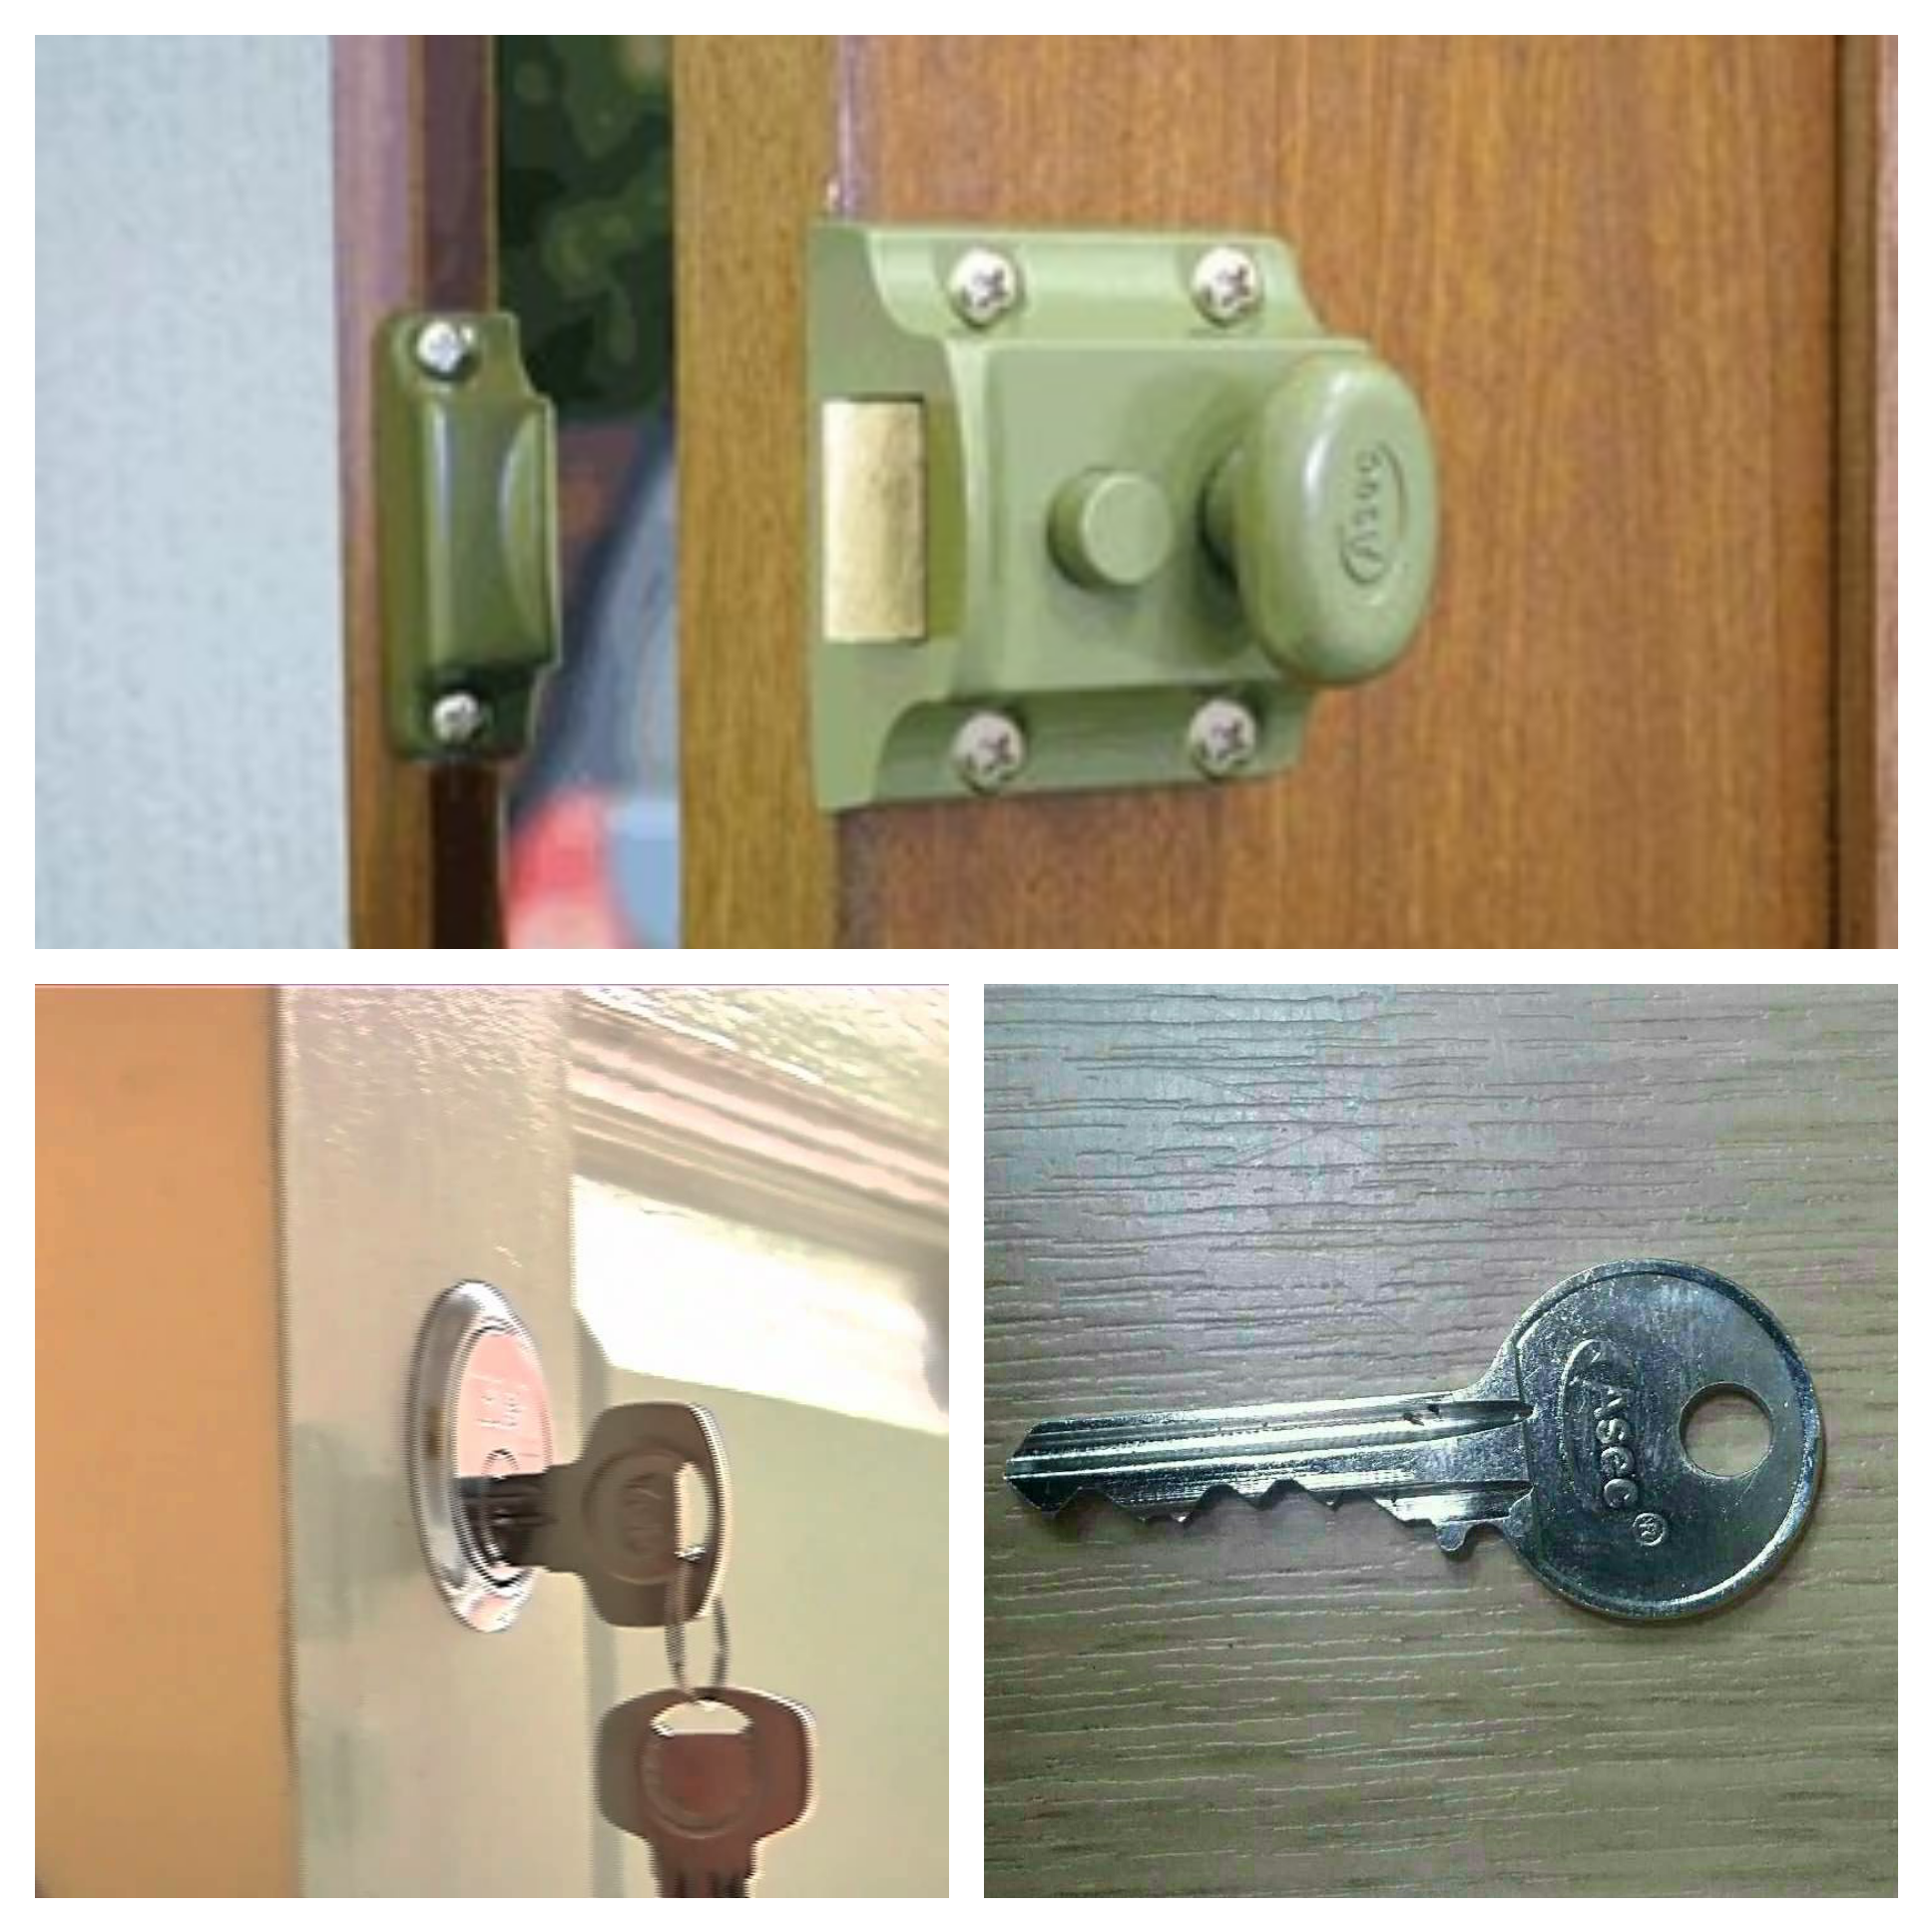 a collage of three pictures showing a green traditional night latch, a silver rim cylinder in a white door and a silver key